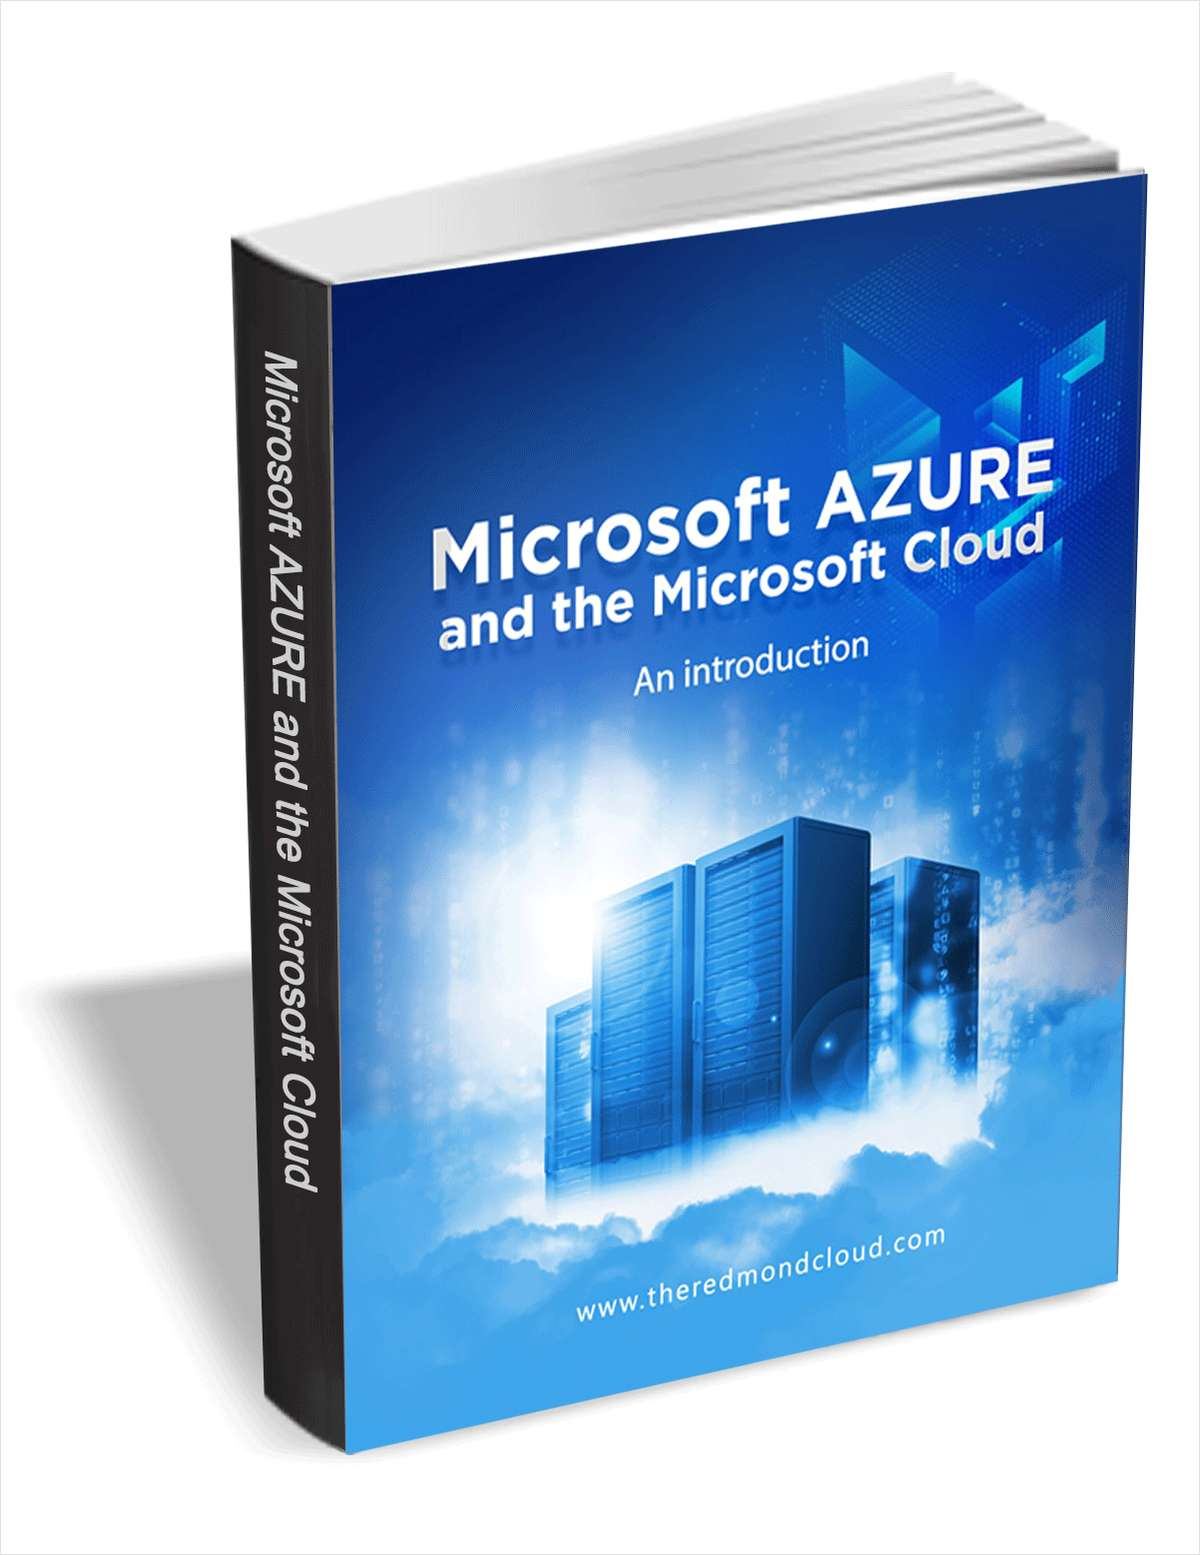 An Introduction to Microsoft Azure and the Microsoft Cloud